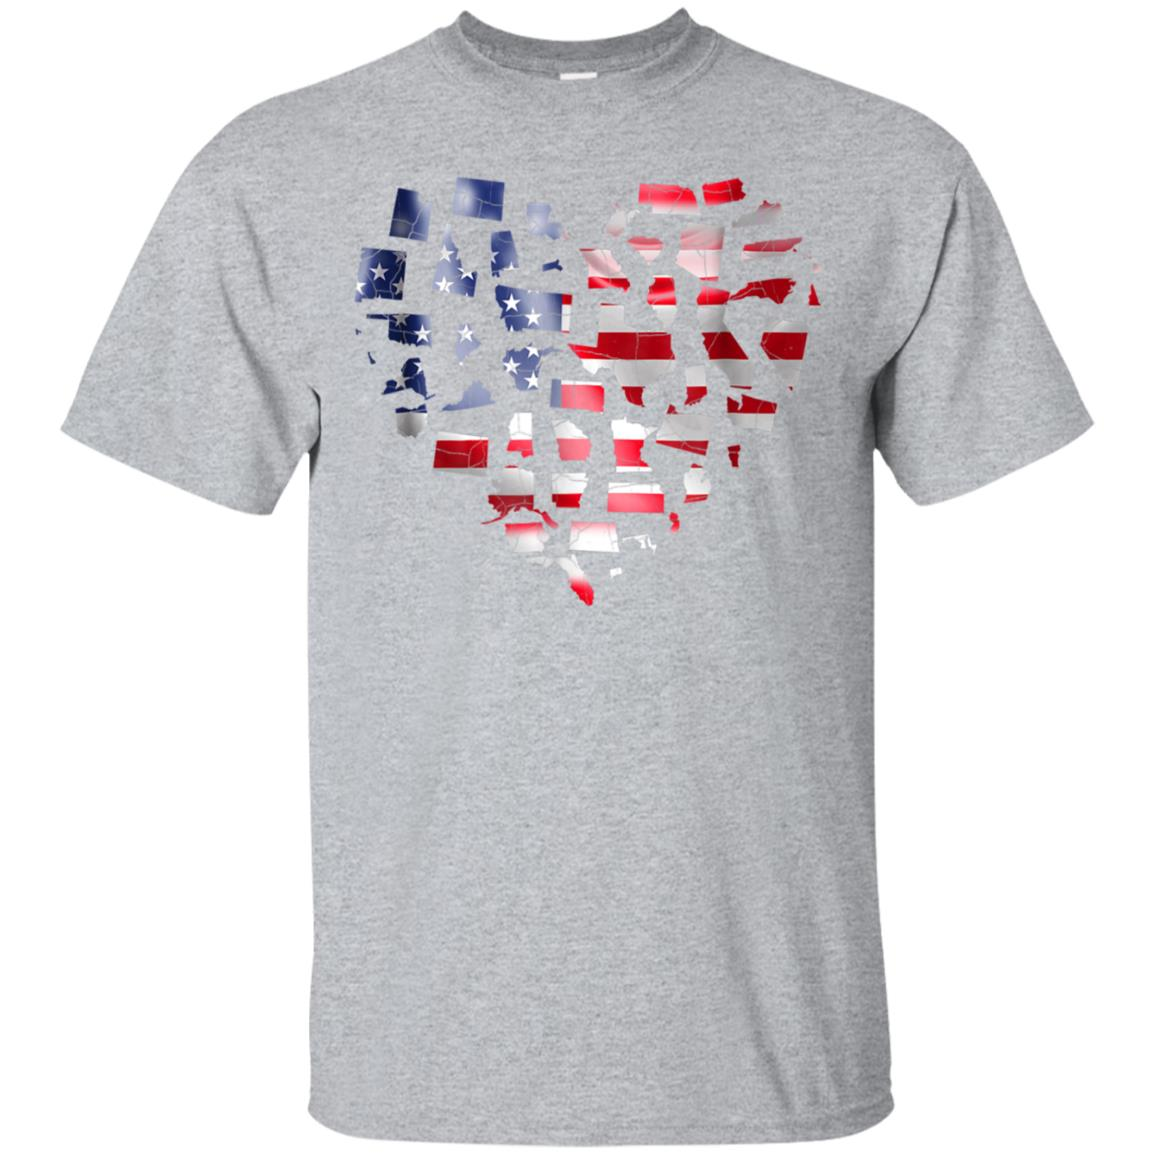 USA Heart Flag Shirt Patriotic Flag 4th of July Distressed 99promocode